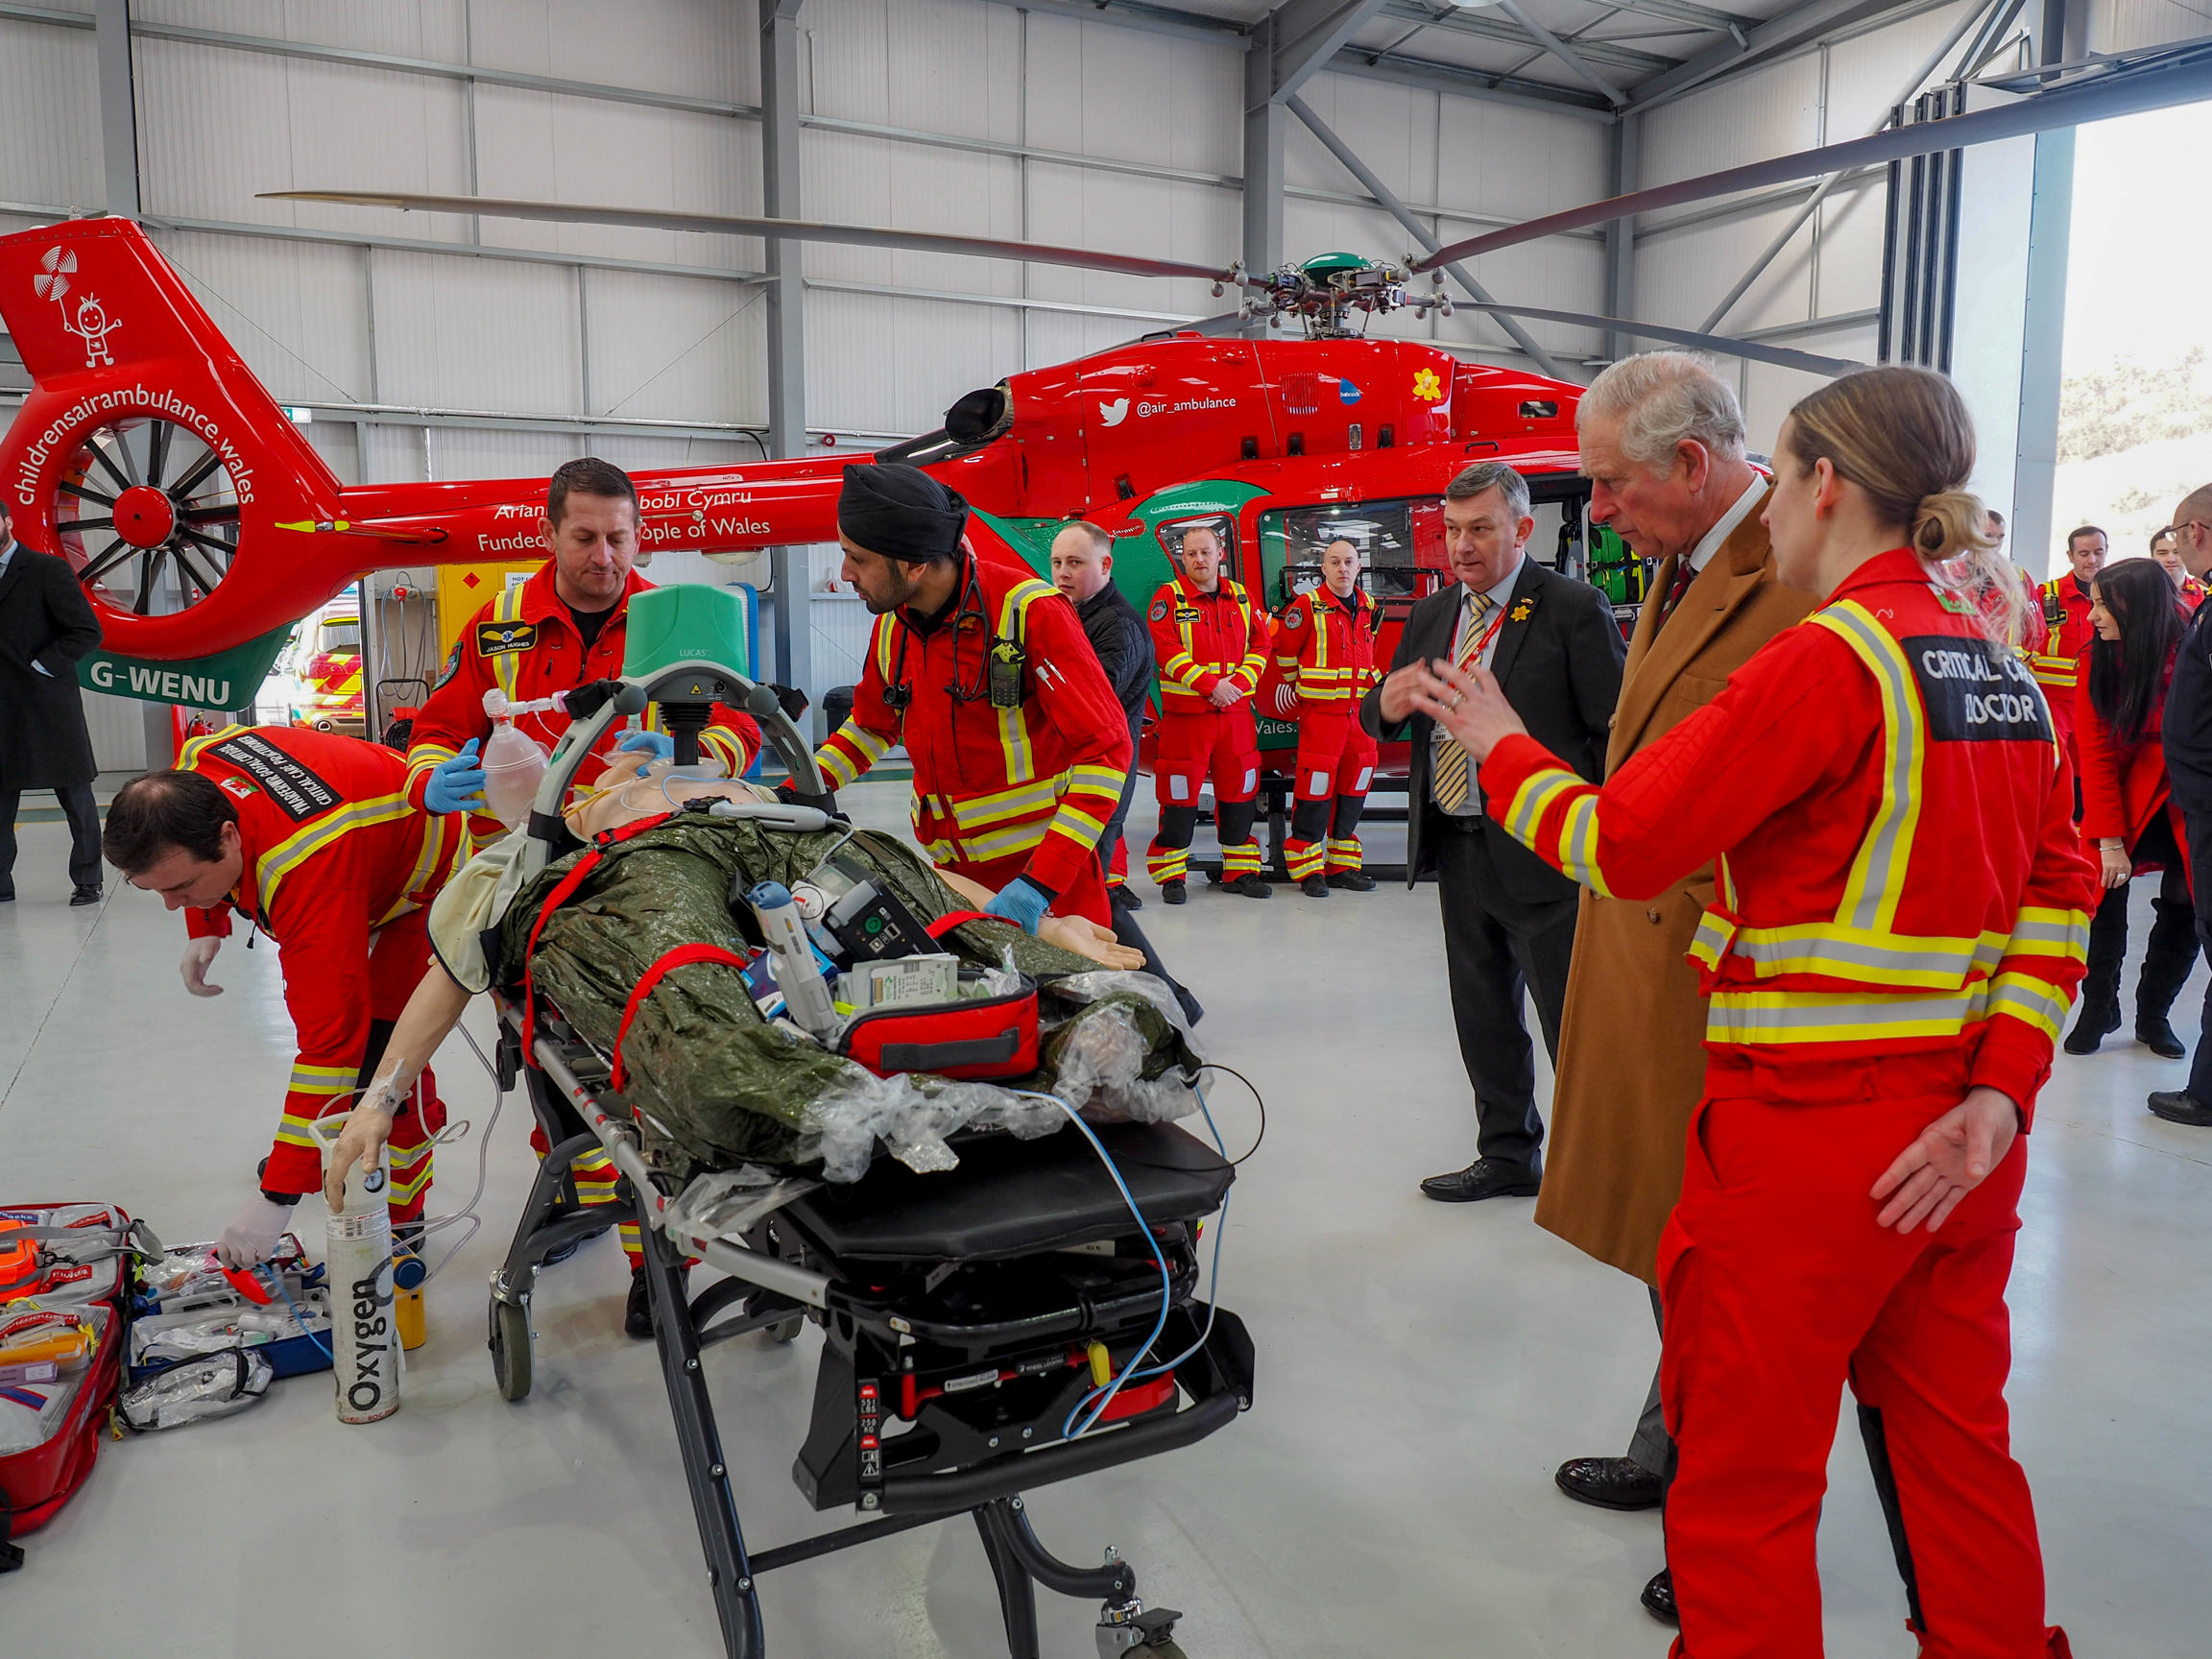 Flying Medics : The Future of Medicine is Here